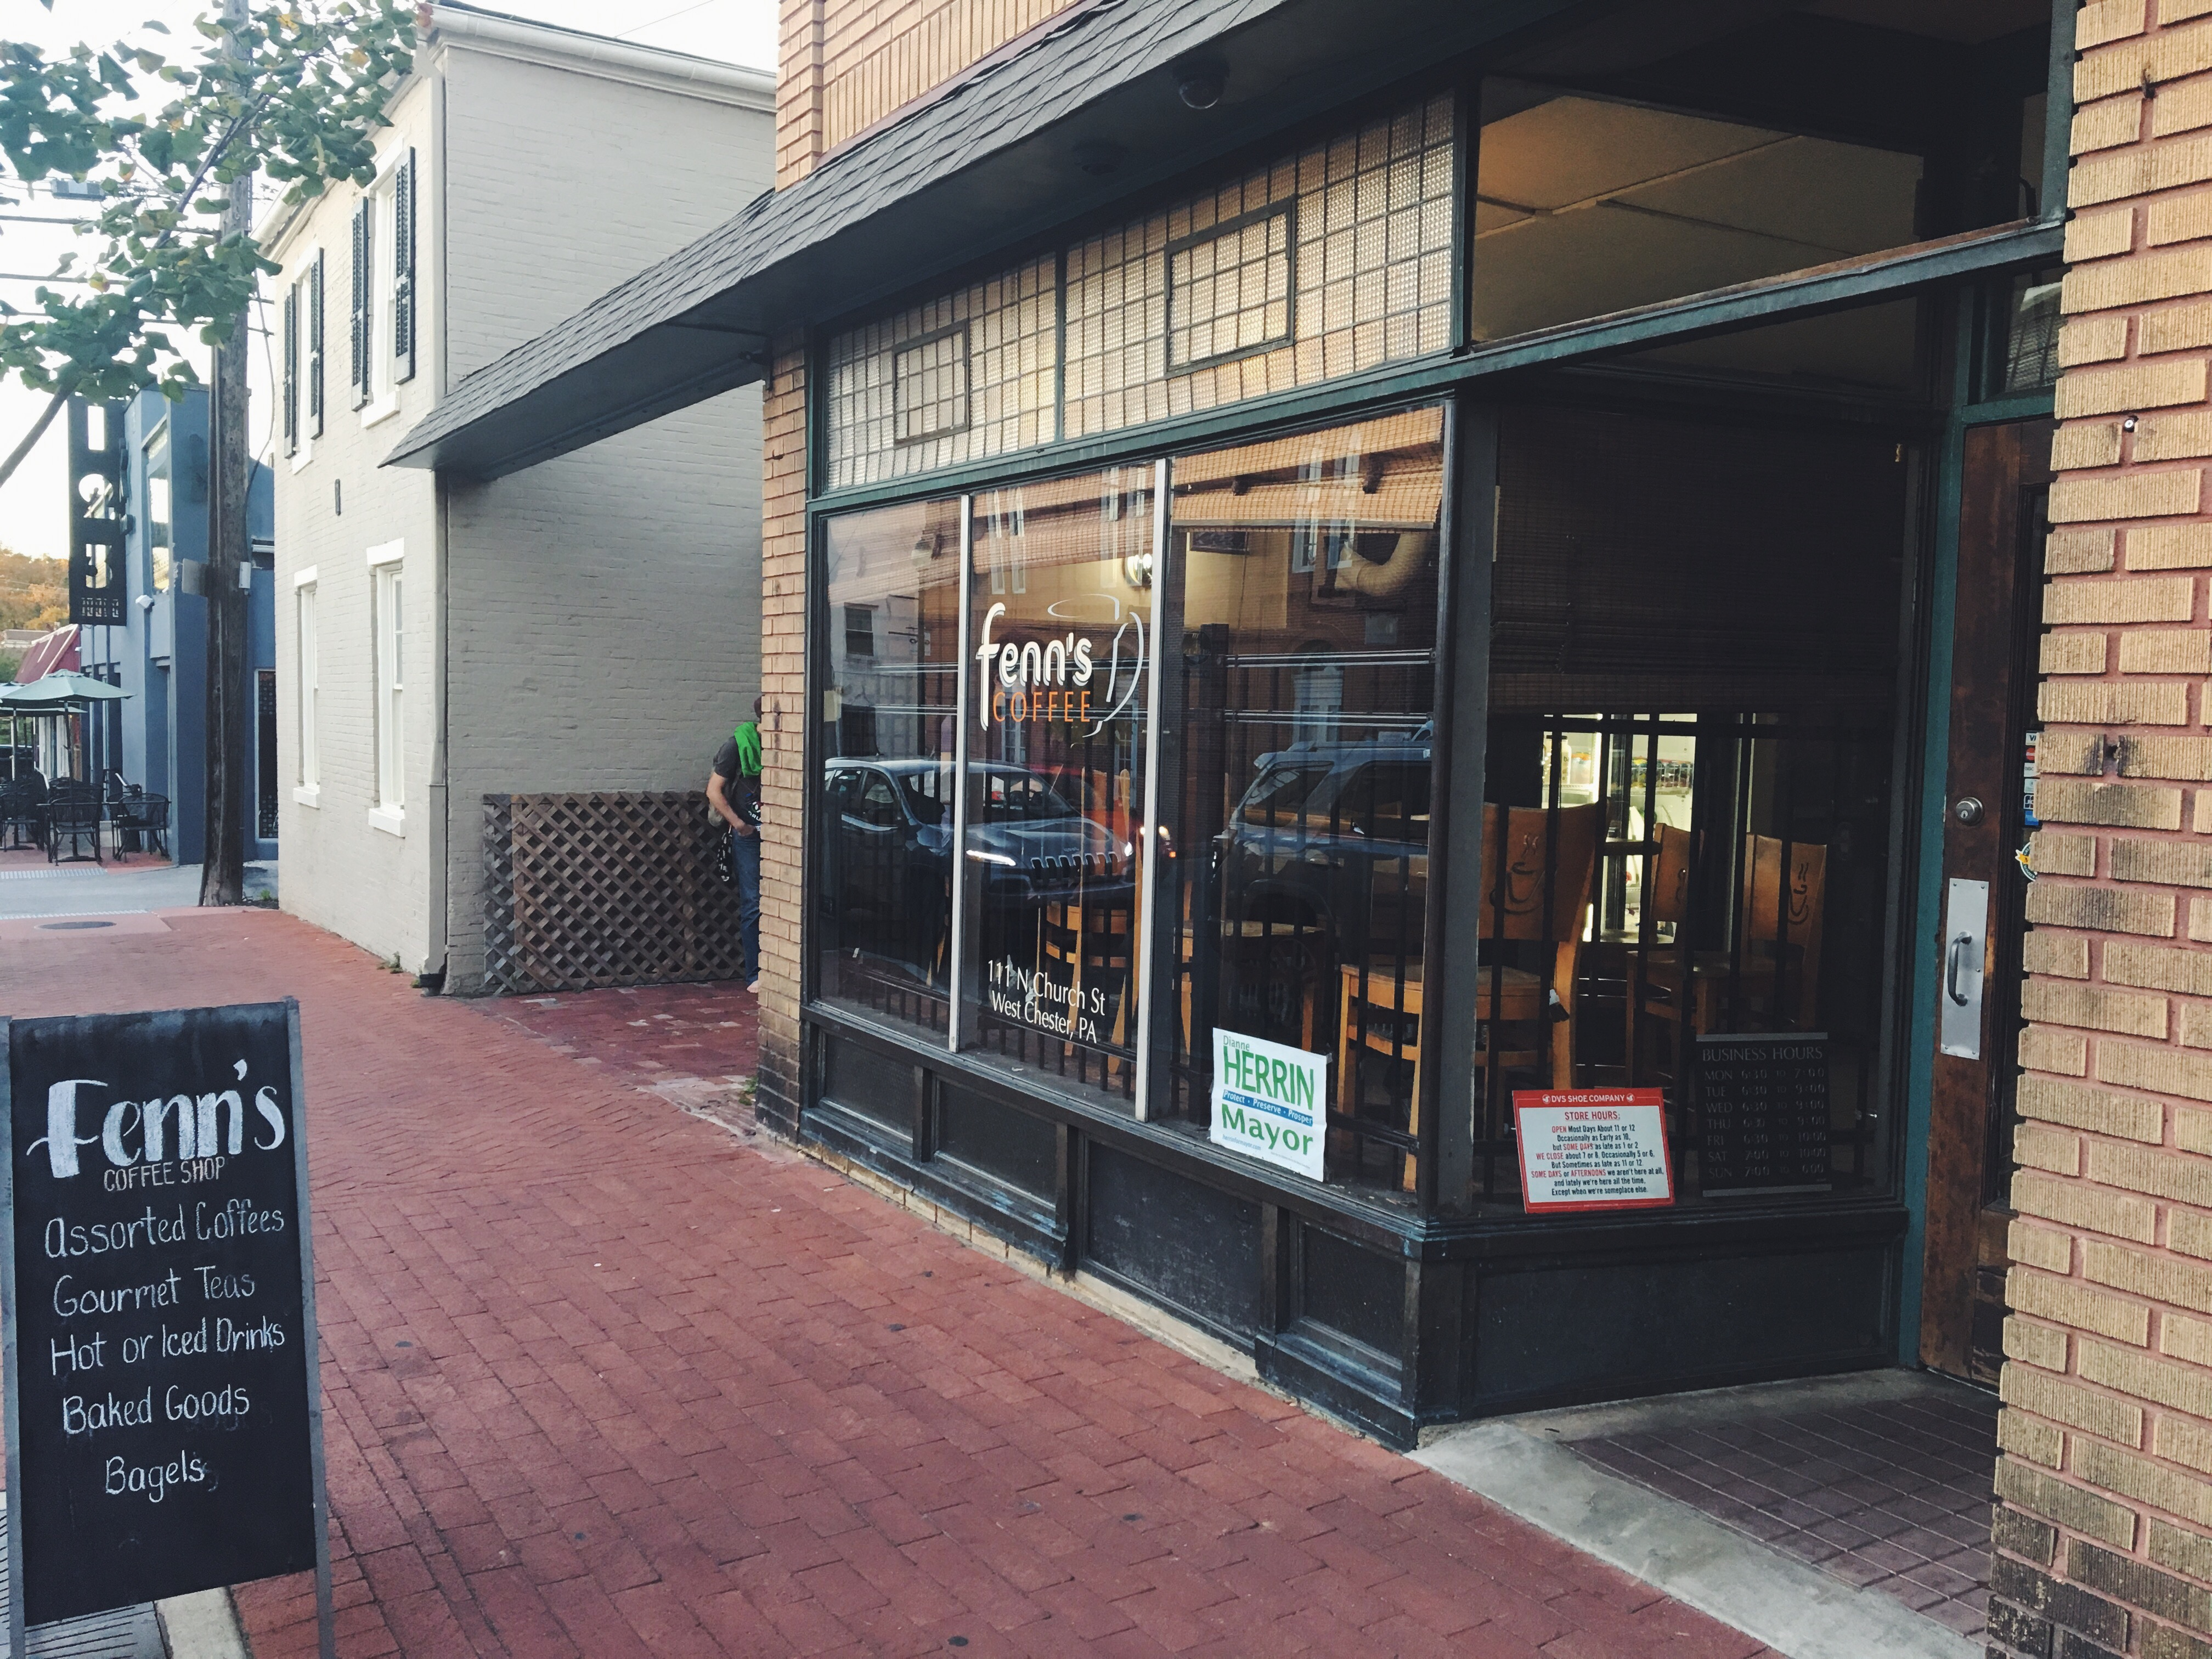 West Chester study spots: The facade of Fenn's coffee, located on Church Street